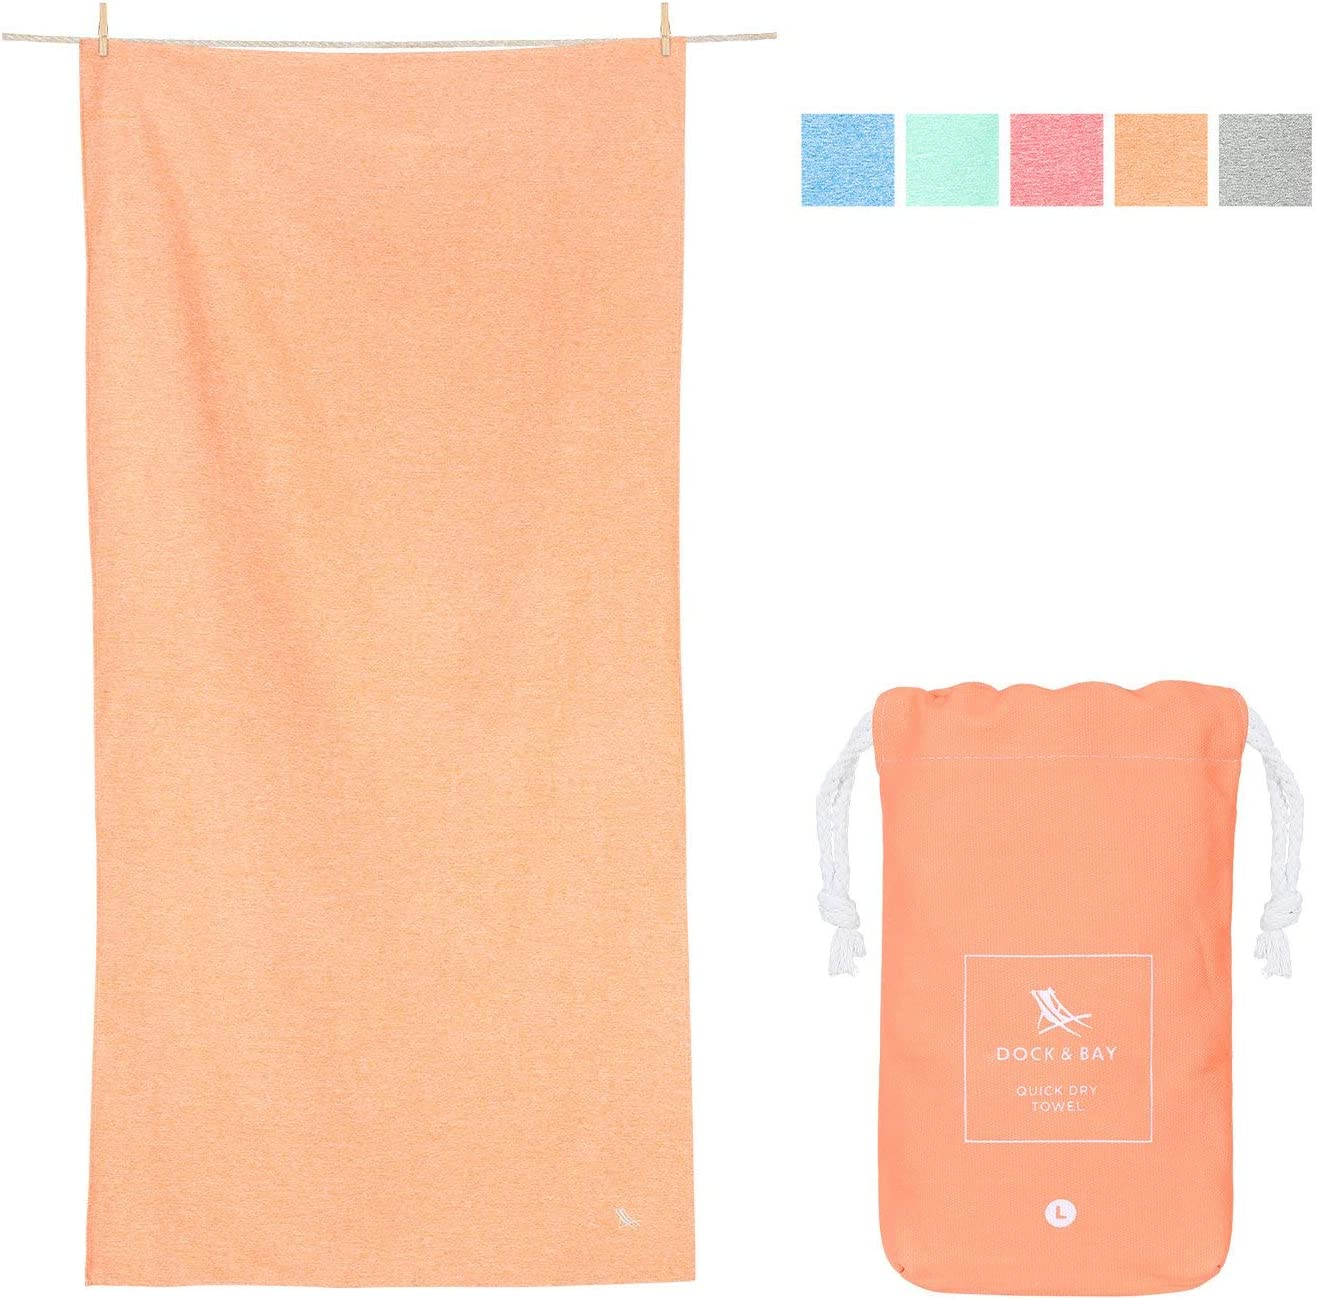 Dock & Bay XL Mat Towels for Sports - Dune Orange, 78 x 35 - Yoga, Pilates & Beach - Travel Towel, Camping, Swim & Pool